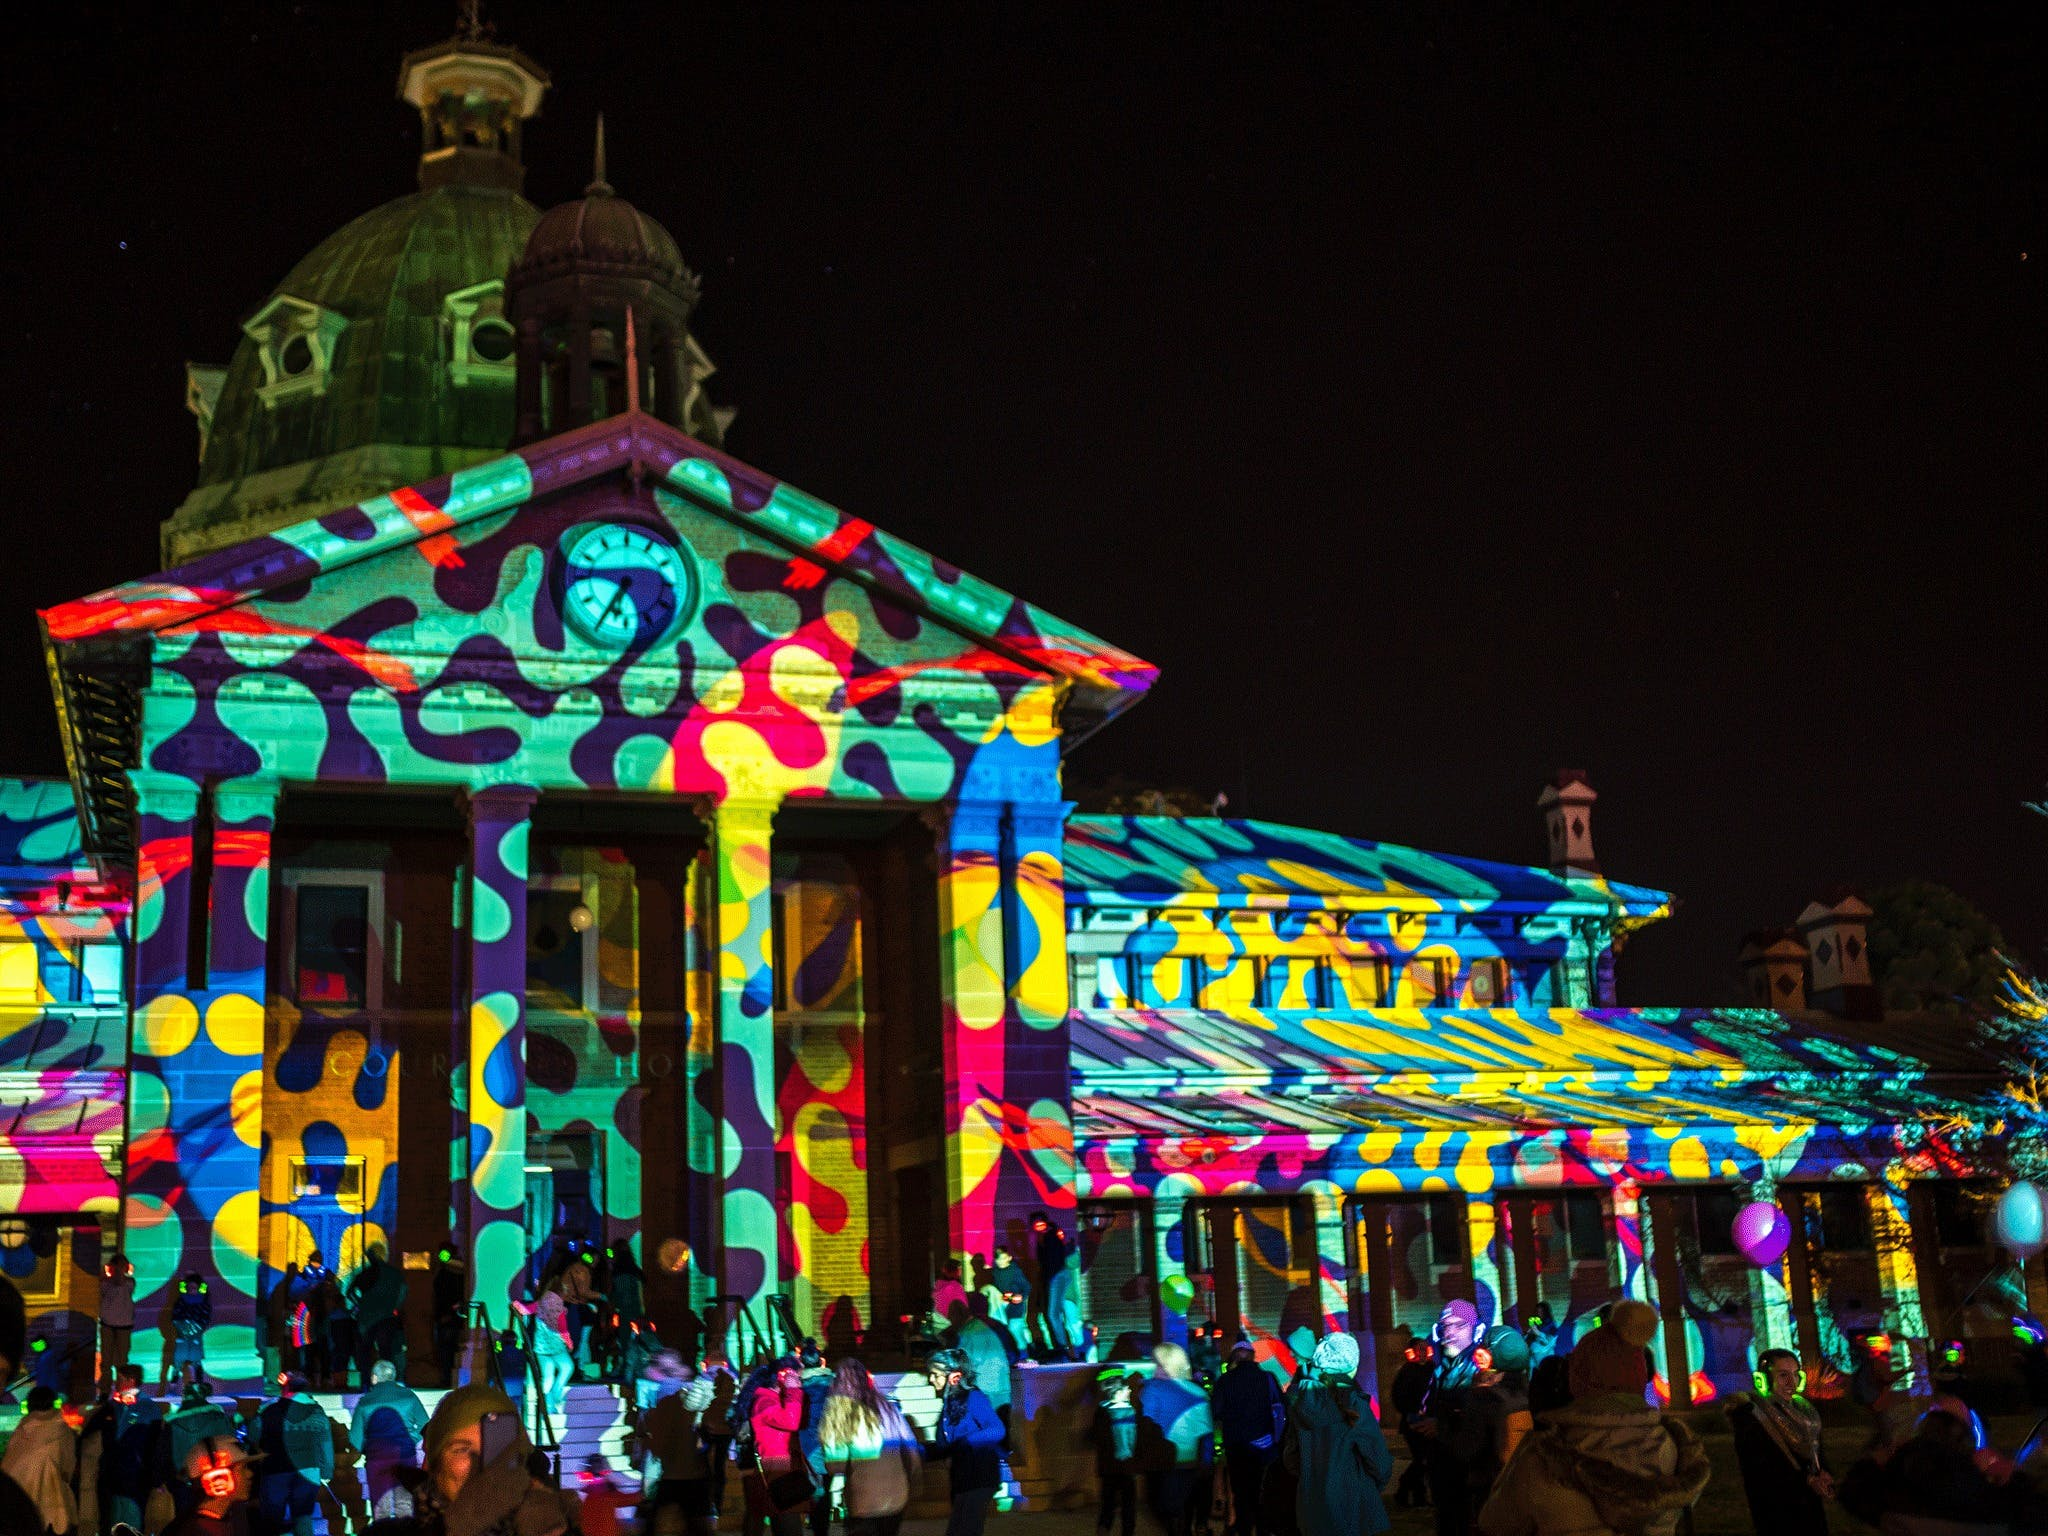 Bathurst Winter Festival - Tourism Canberra